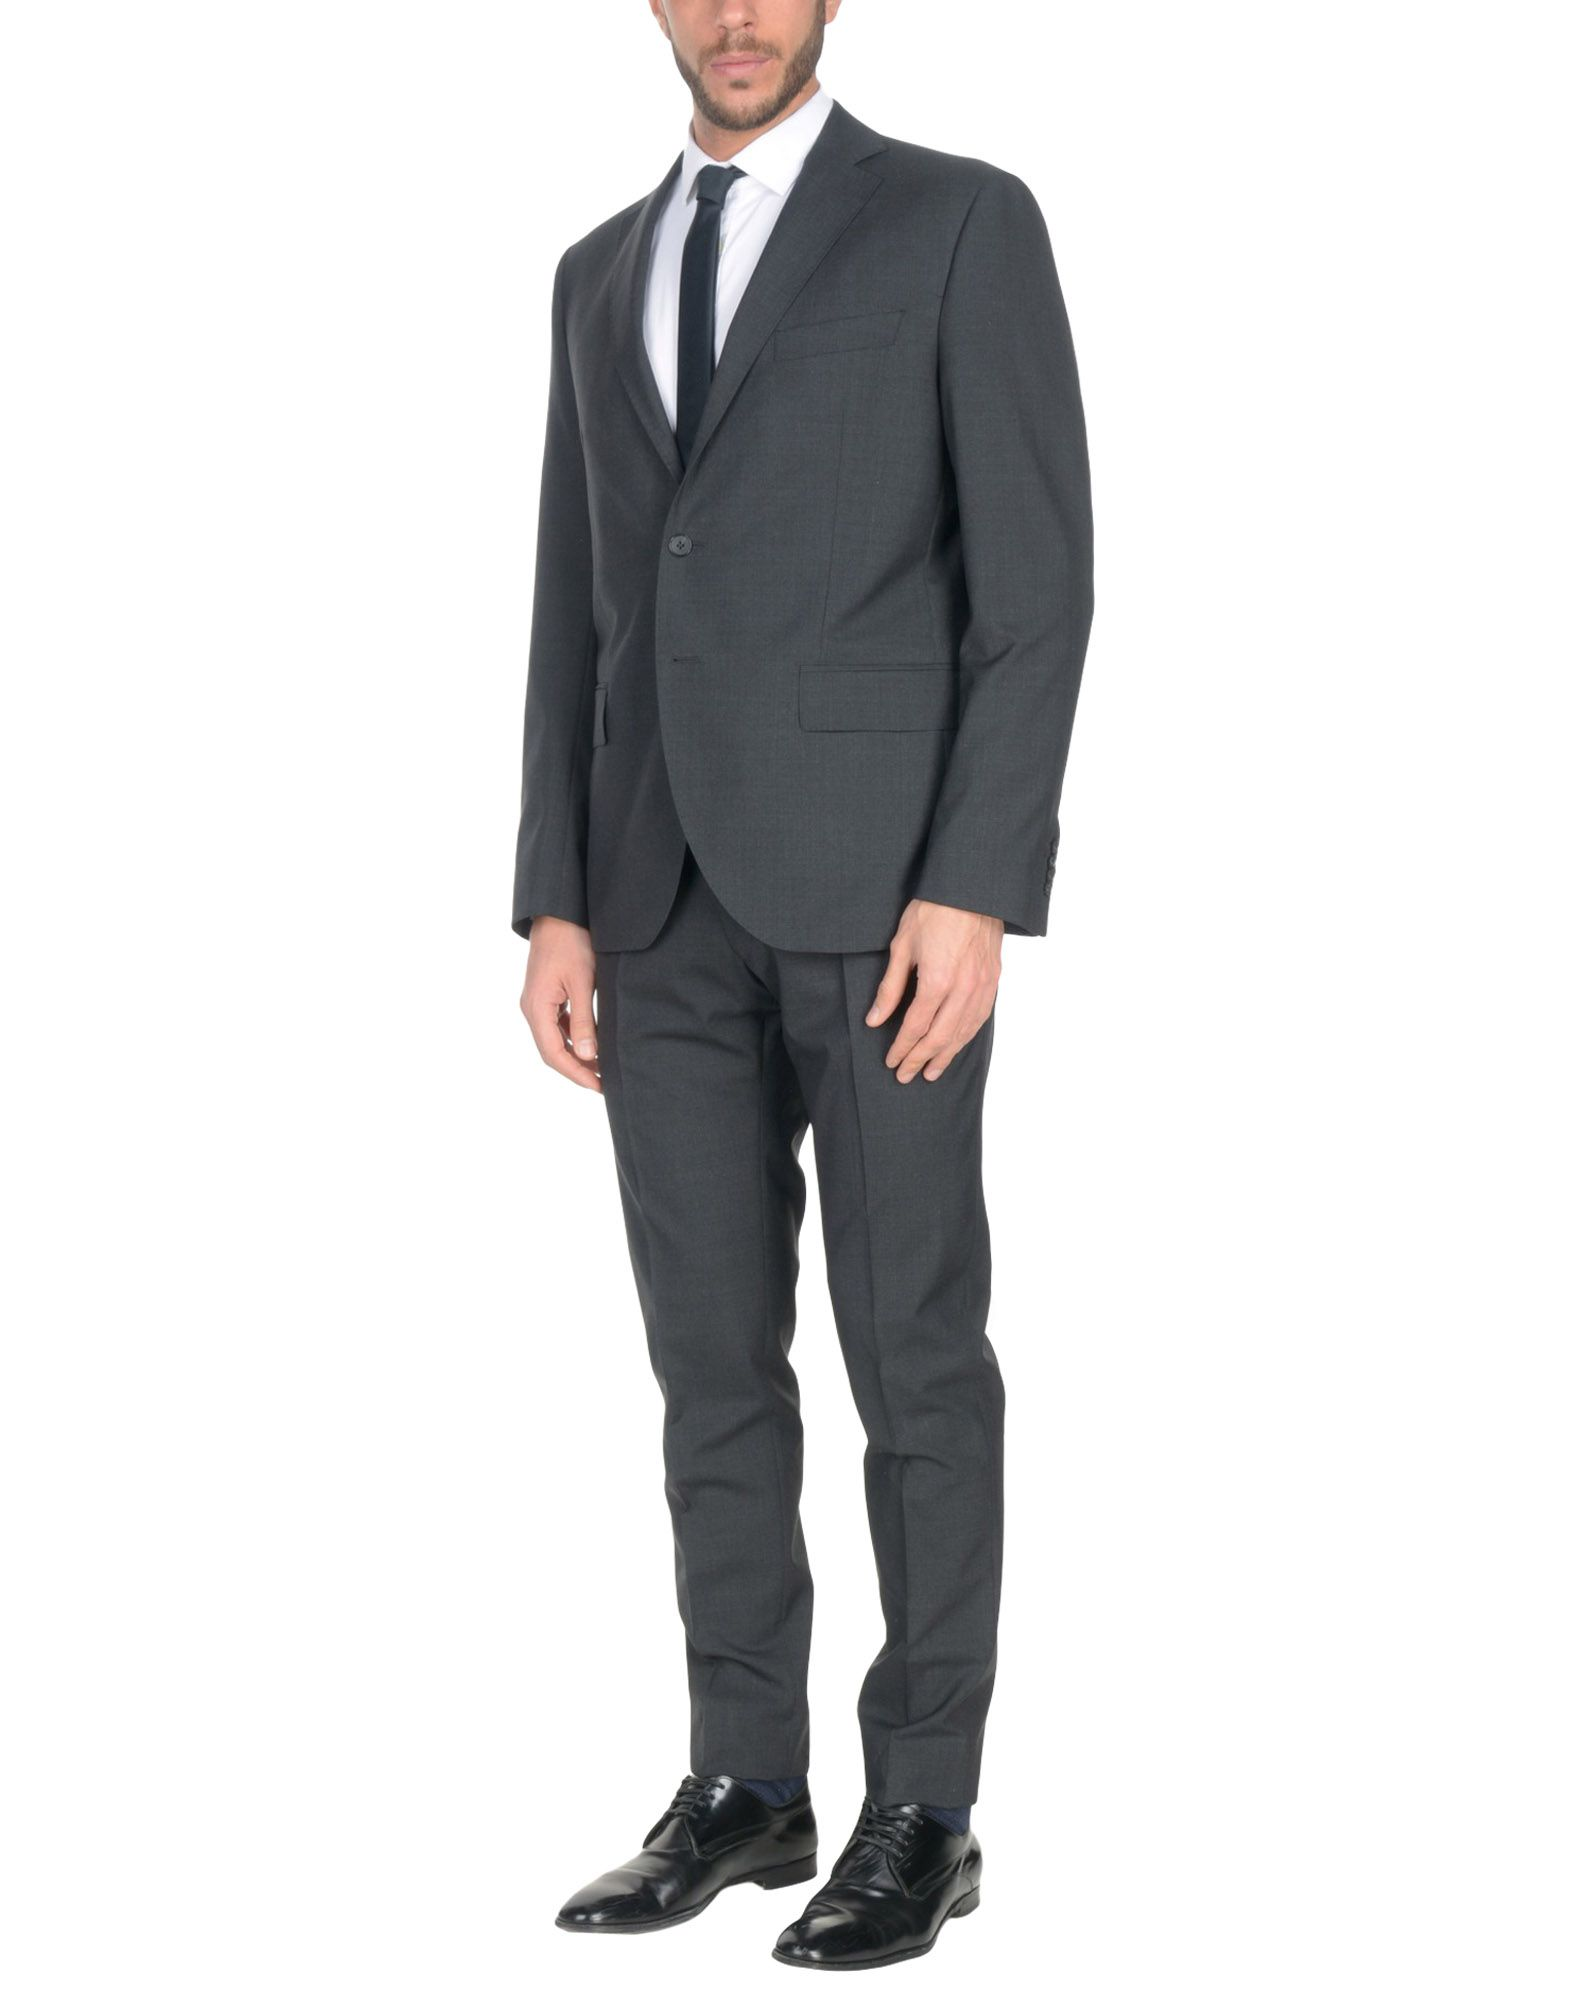 LUBIAM Suits in Steel Grey